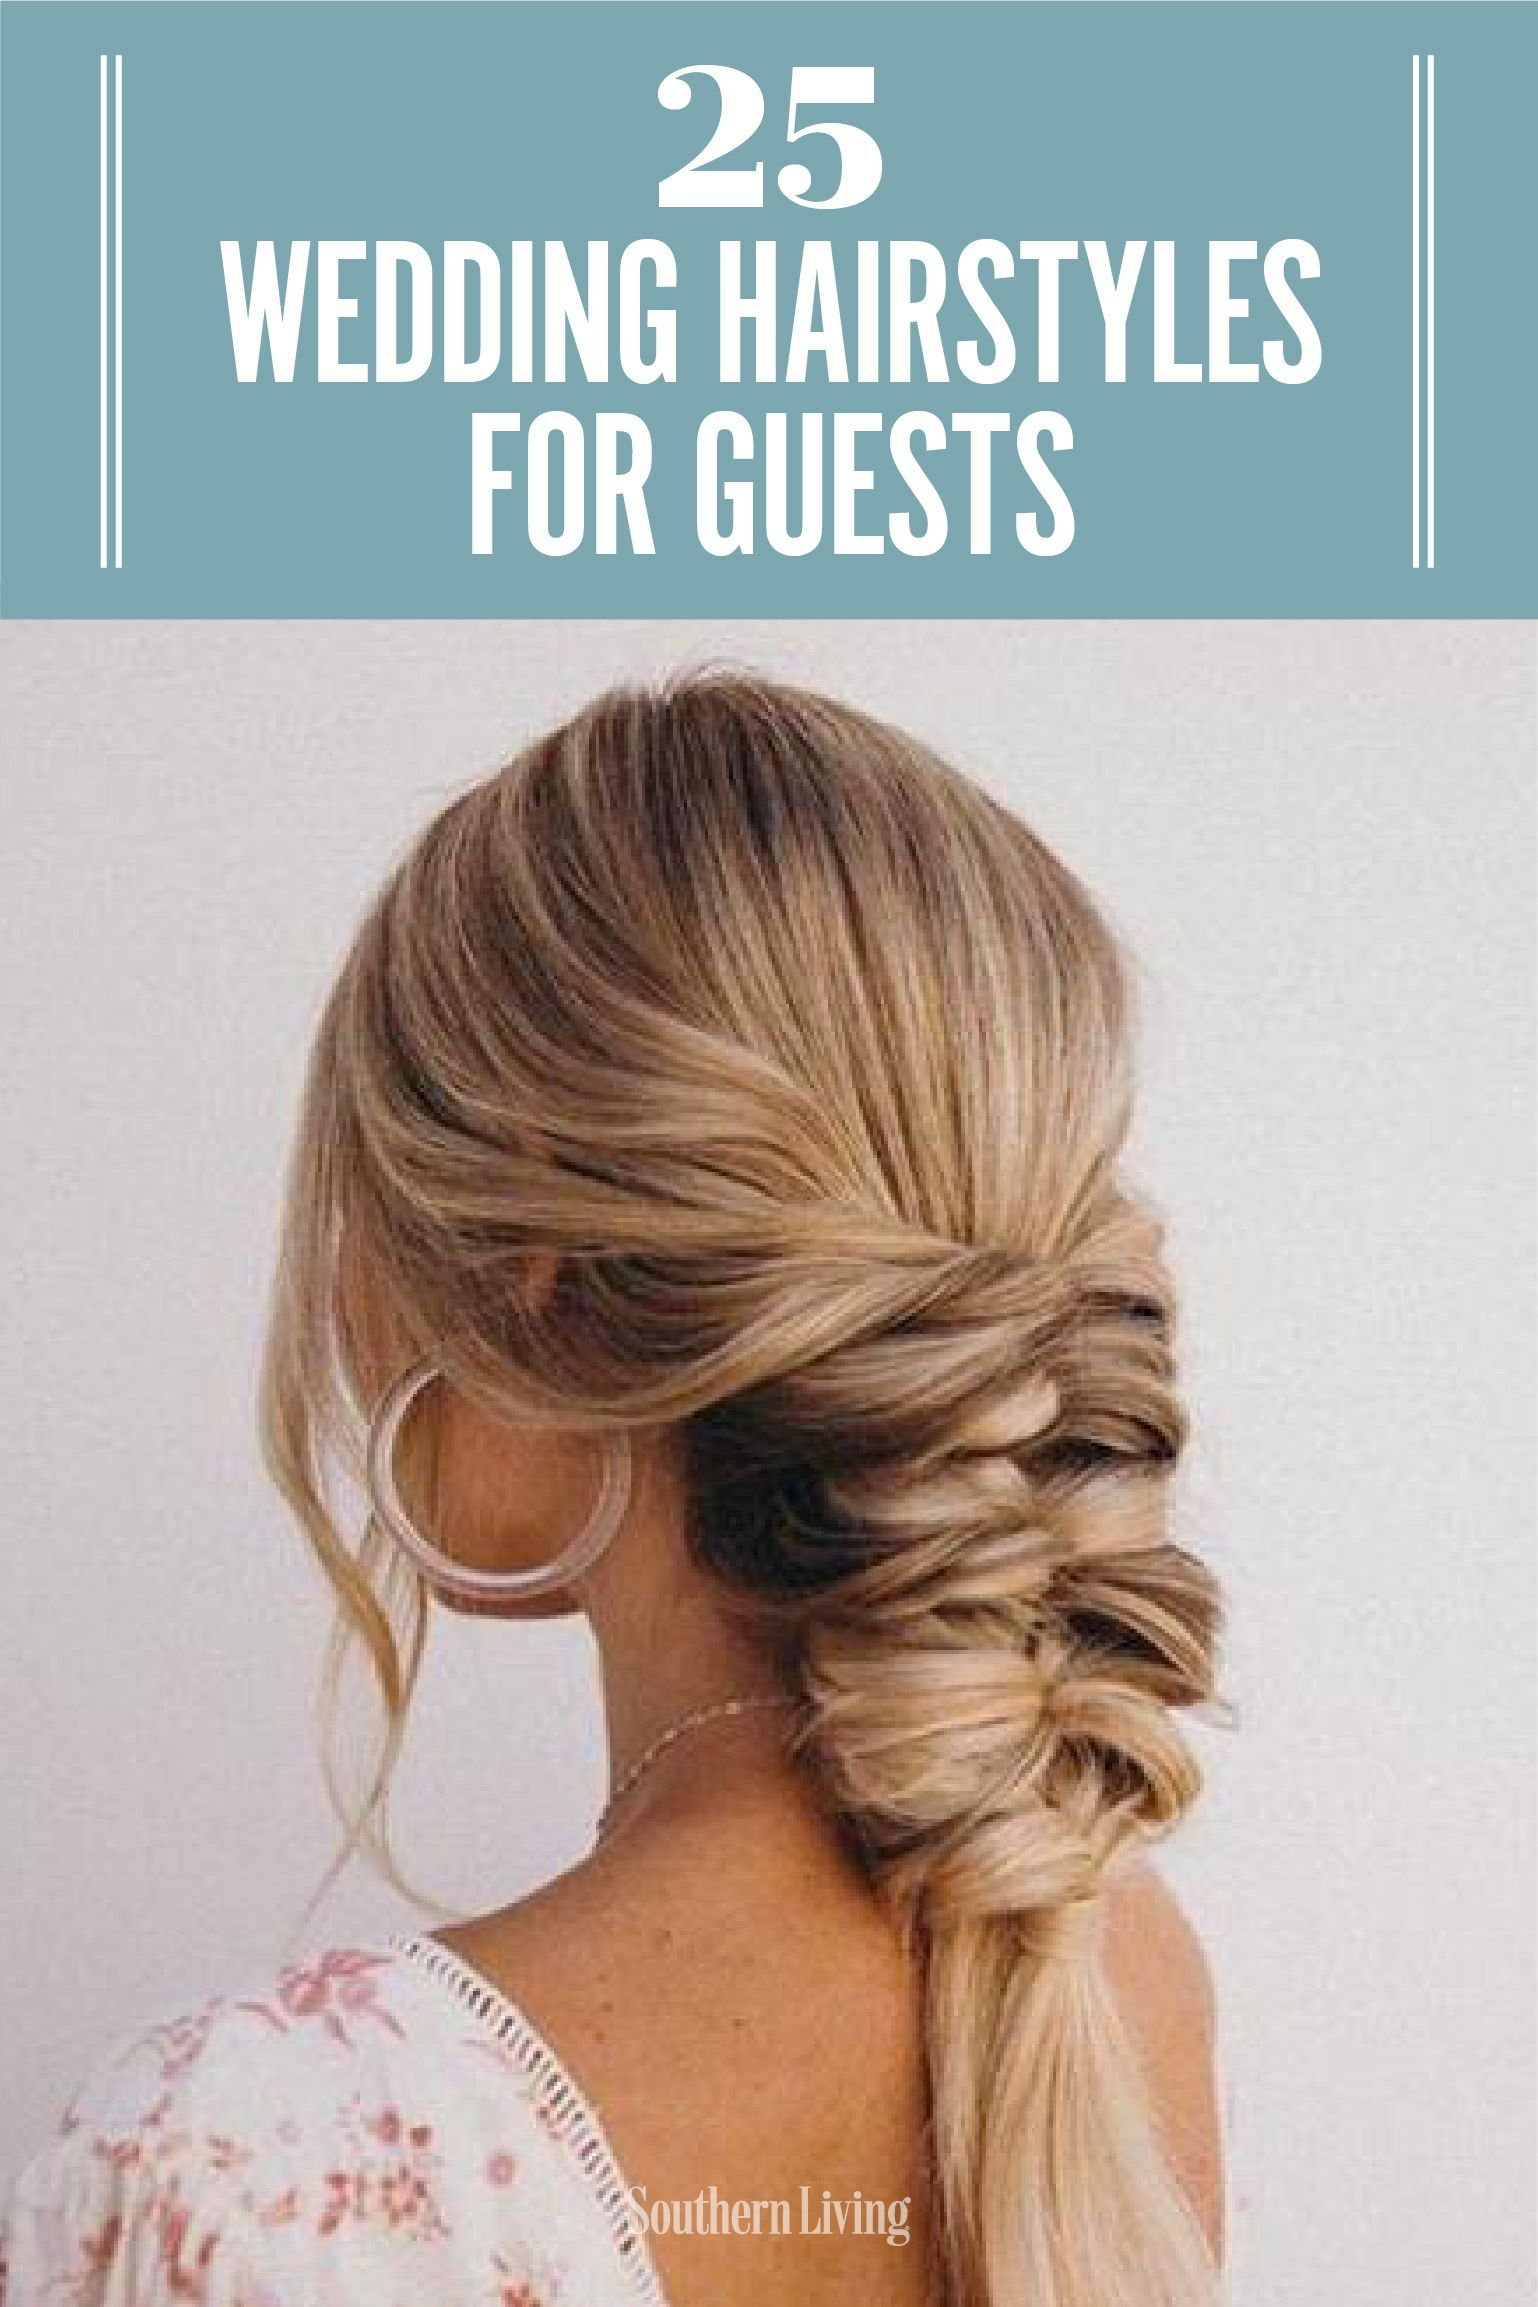 25 Easy Wedding Hairstyles for Guests That'll Work for Every Dress Code #weddingguesthairstyles